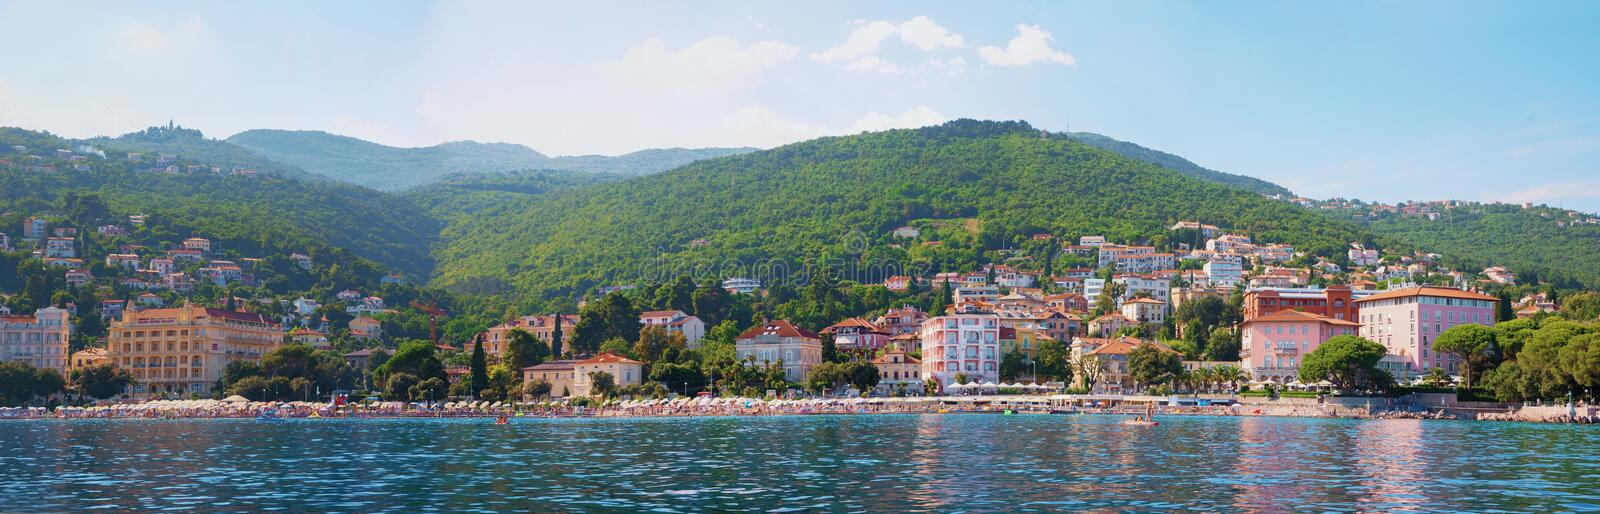 OPATIJA, CROATIA, August 9th, 2019 - popular coastal resort Kvarner Bucht, Opatija Riviera. View from the boat trip to the beach and hills ucka stock photography